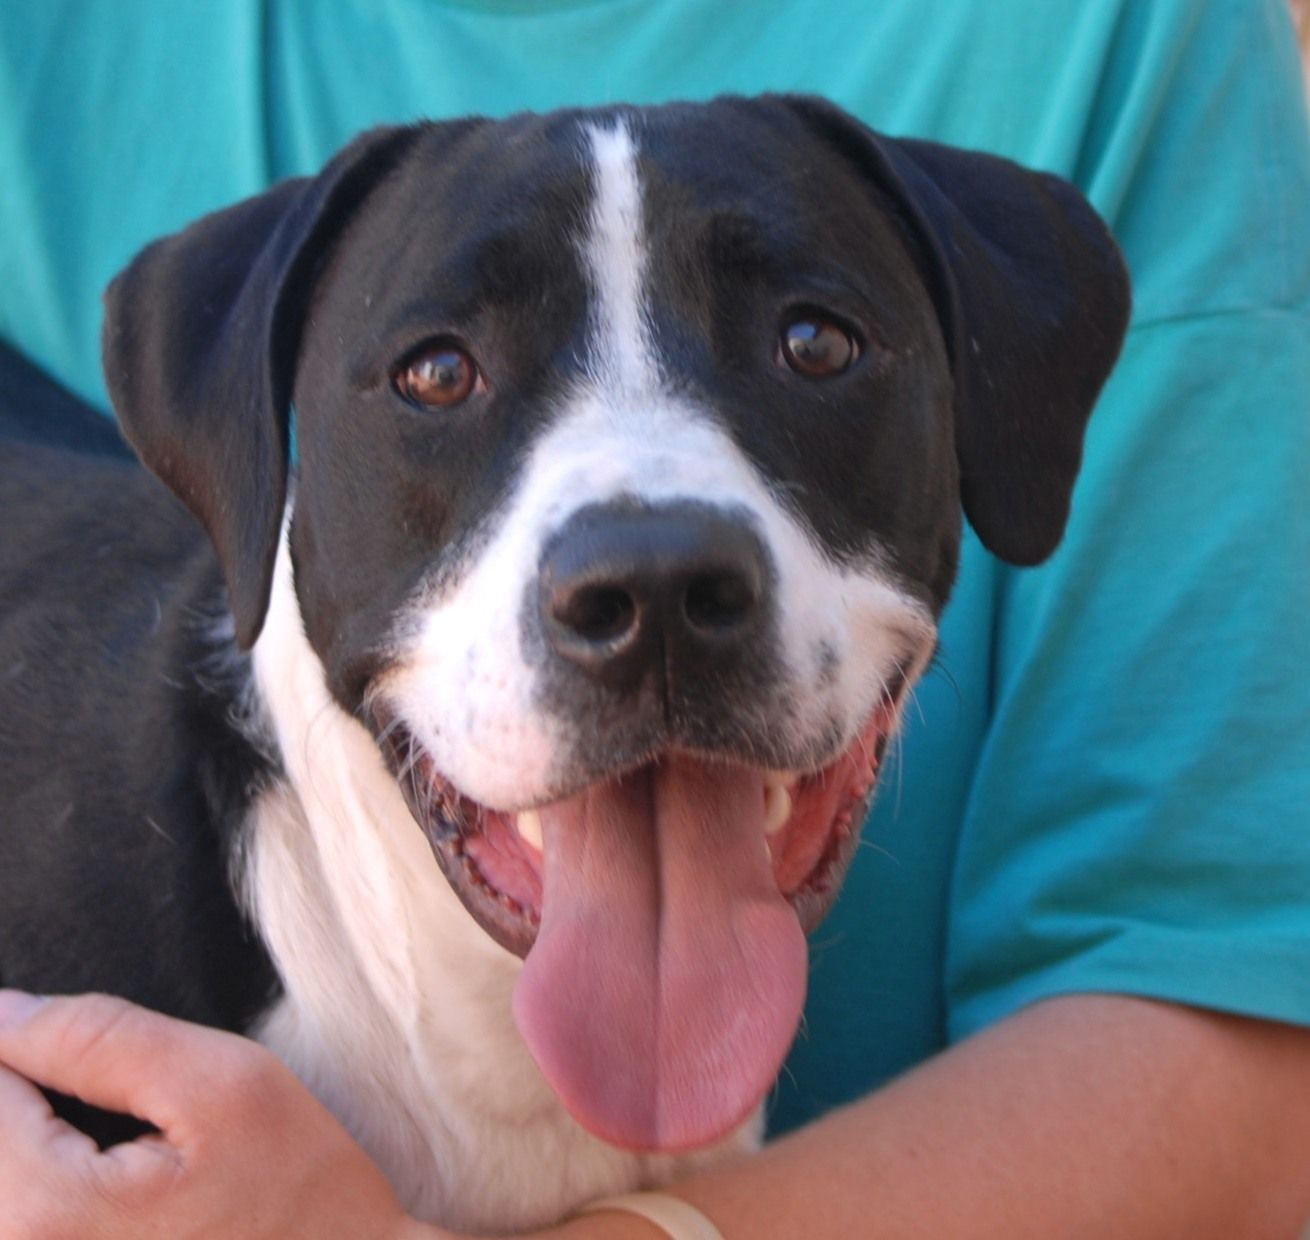 Doug is a smart, well-behaved youngster who loves everyone -- kids, adults, dogs, and cats.  His parents were reportedly a Basset Hound & American Bulldog (he has short legs and a long body) and he is 1 year of age, neutered, and debuting for adoption today at Nevada SPCA (www.nevadaspca.org).  Doug loves to cuddle and he rings a bell when he needs to go outside.  He needed us due to his previous owner's divorce.